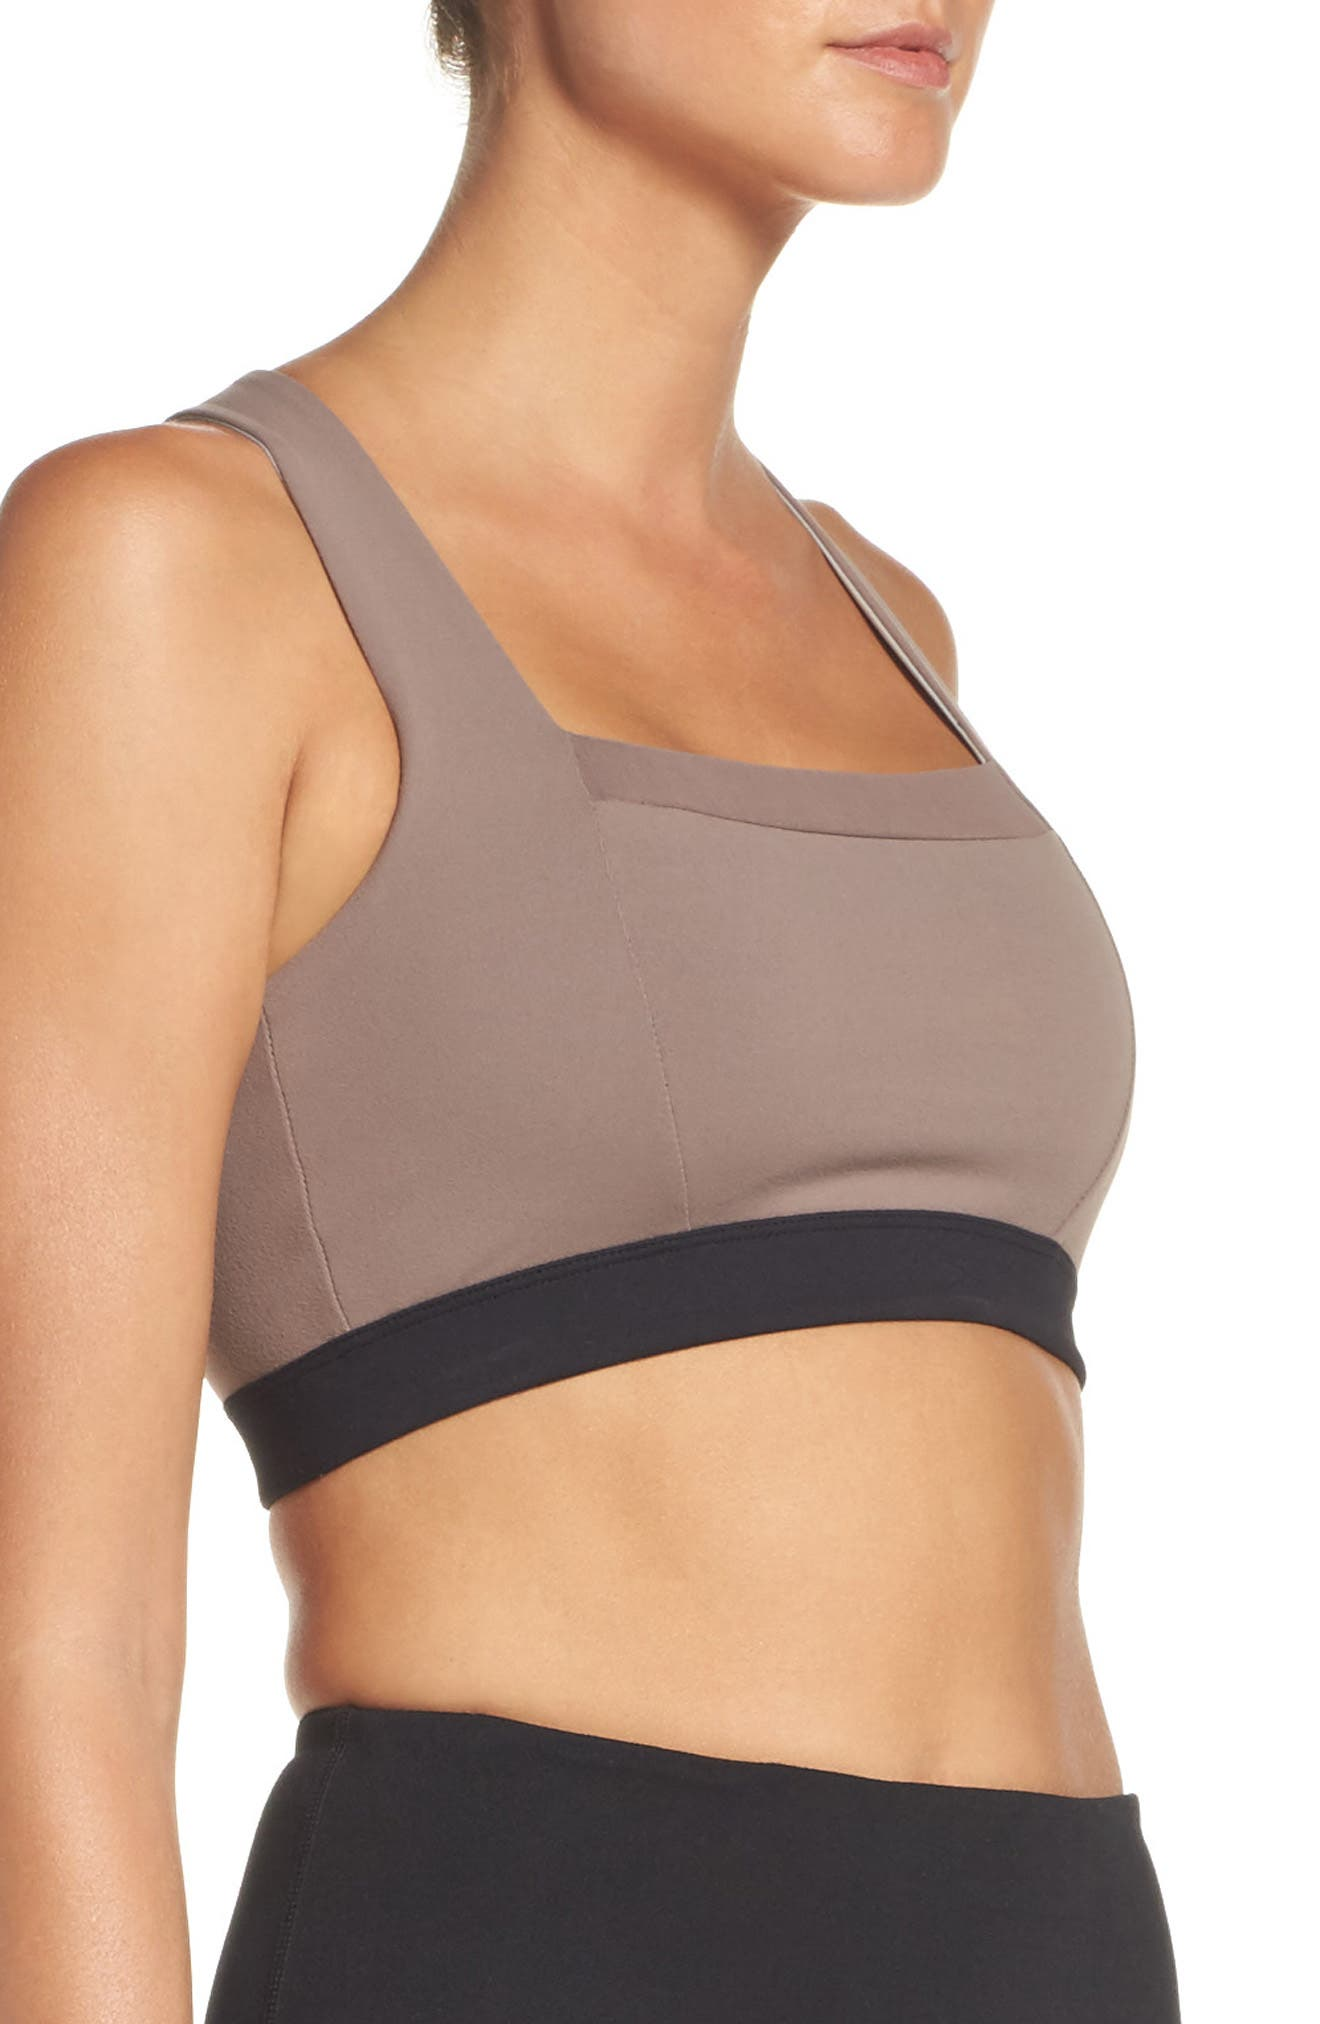 Alternate Image 3  - Zella Jenna Sports Bra